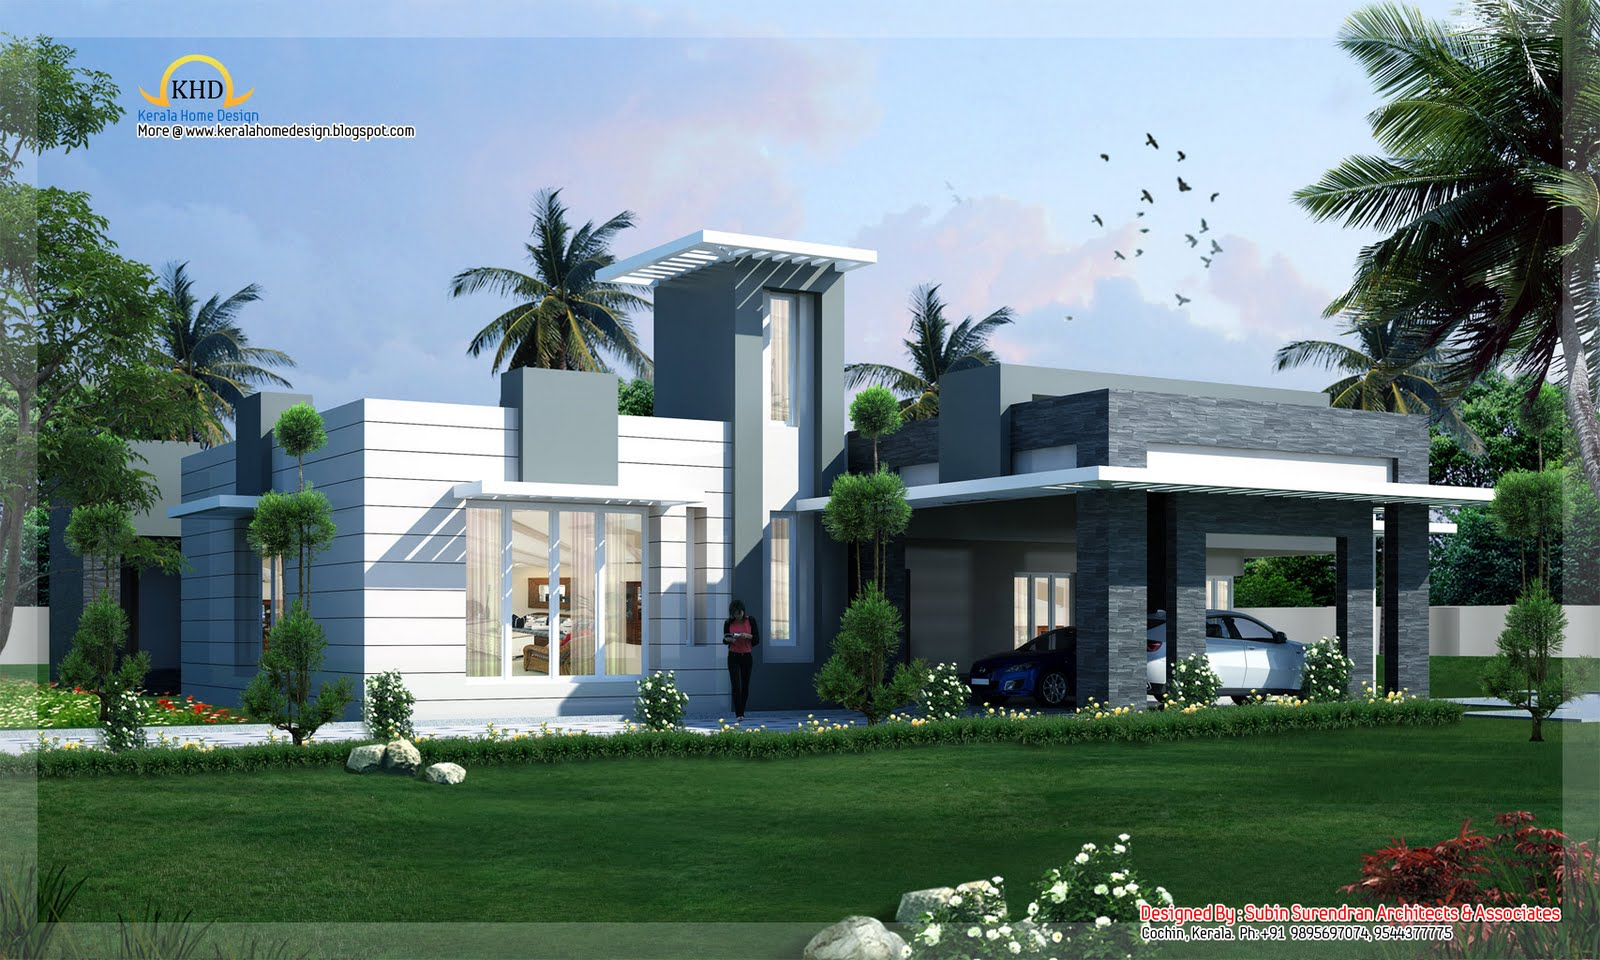 Merveilleux Contemporary Home Design   418 Sq M (4500 Sq. Ft)   January 2012